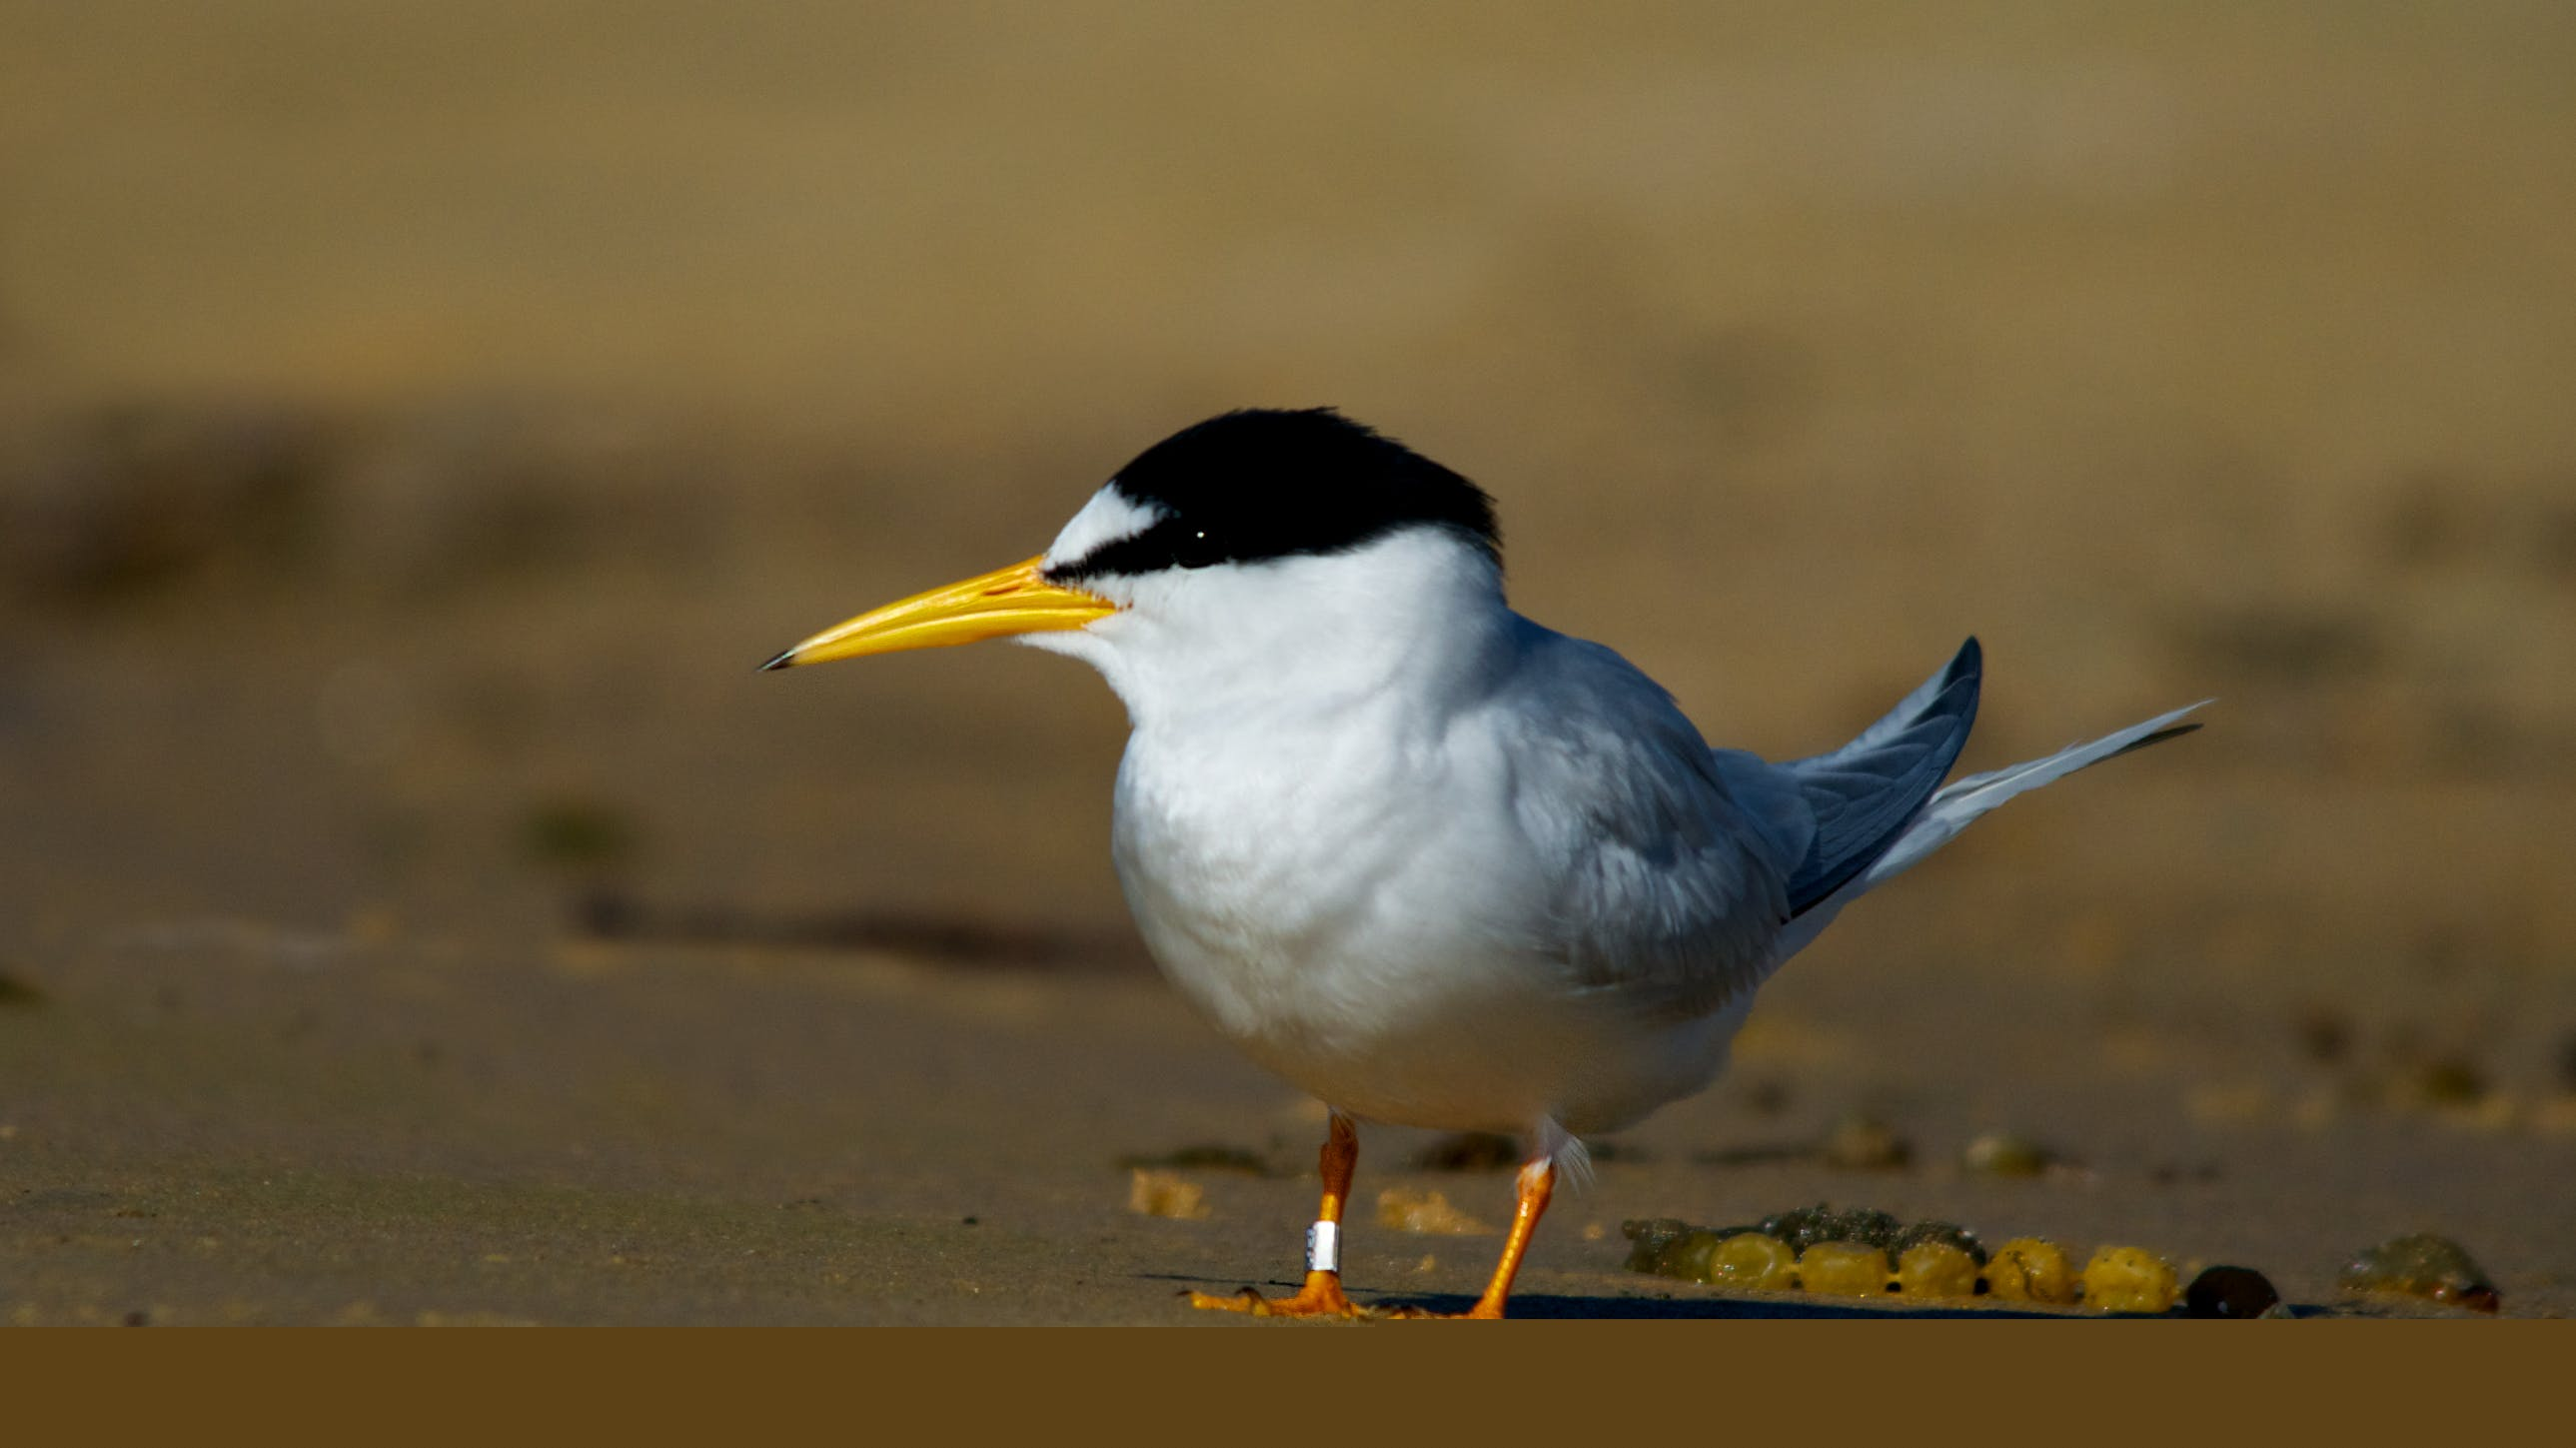 Little tern adult on beach. Little terns are distinguishable from fairy terns by their black bill tip, black 'eyeline' and slightly different shade of yellow bill. Photo: J Cornish.